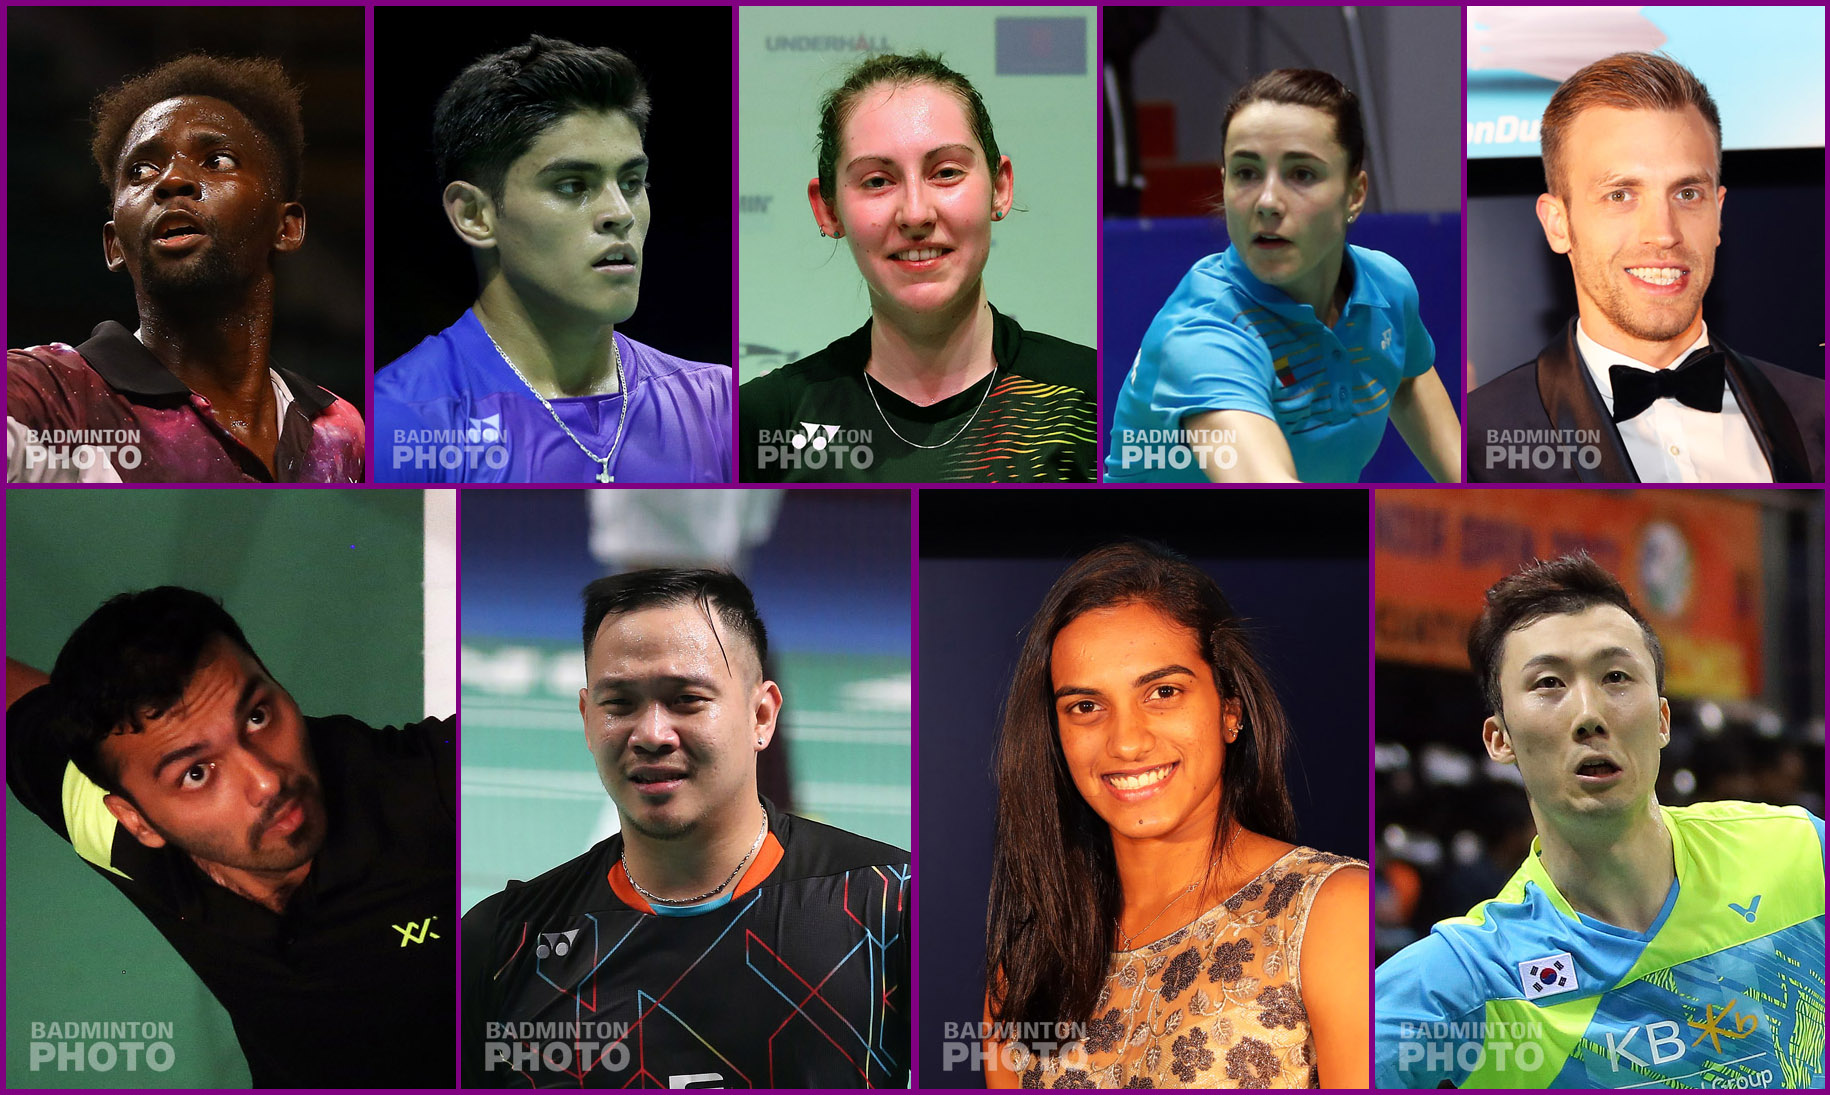 The Badminton World Federation (BWF) published the list of nominees yesterday ahead of voting for the BWF Athletes' Commission. Four positions need to be filled on the Commission. Three current […]